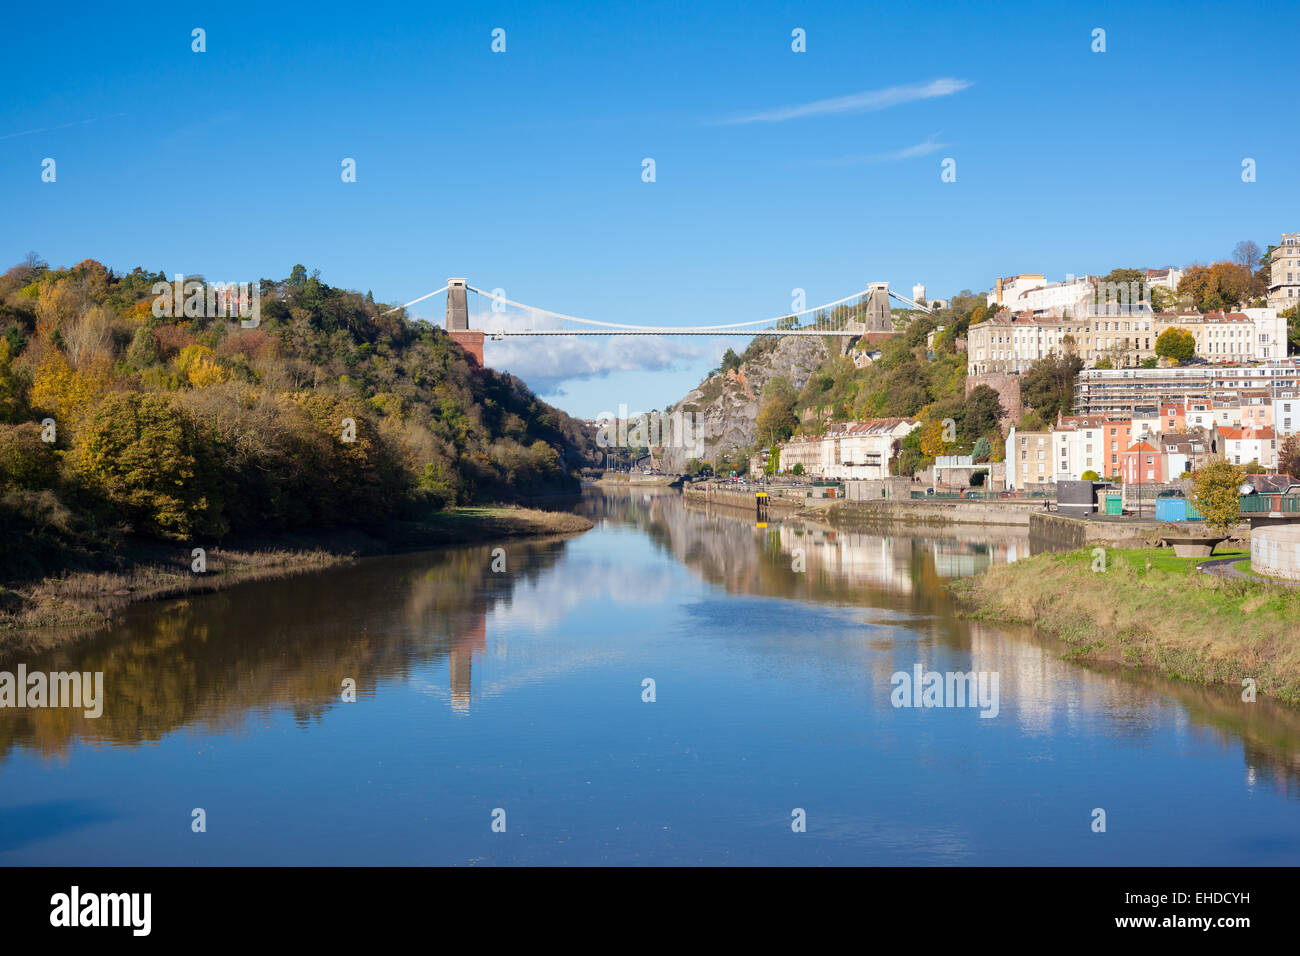 Wide view of Clifton Suspension Bridge which spans the Avon Gorge in Bristol, England, UK - Stock Image